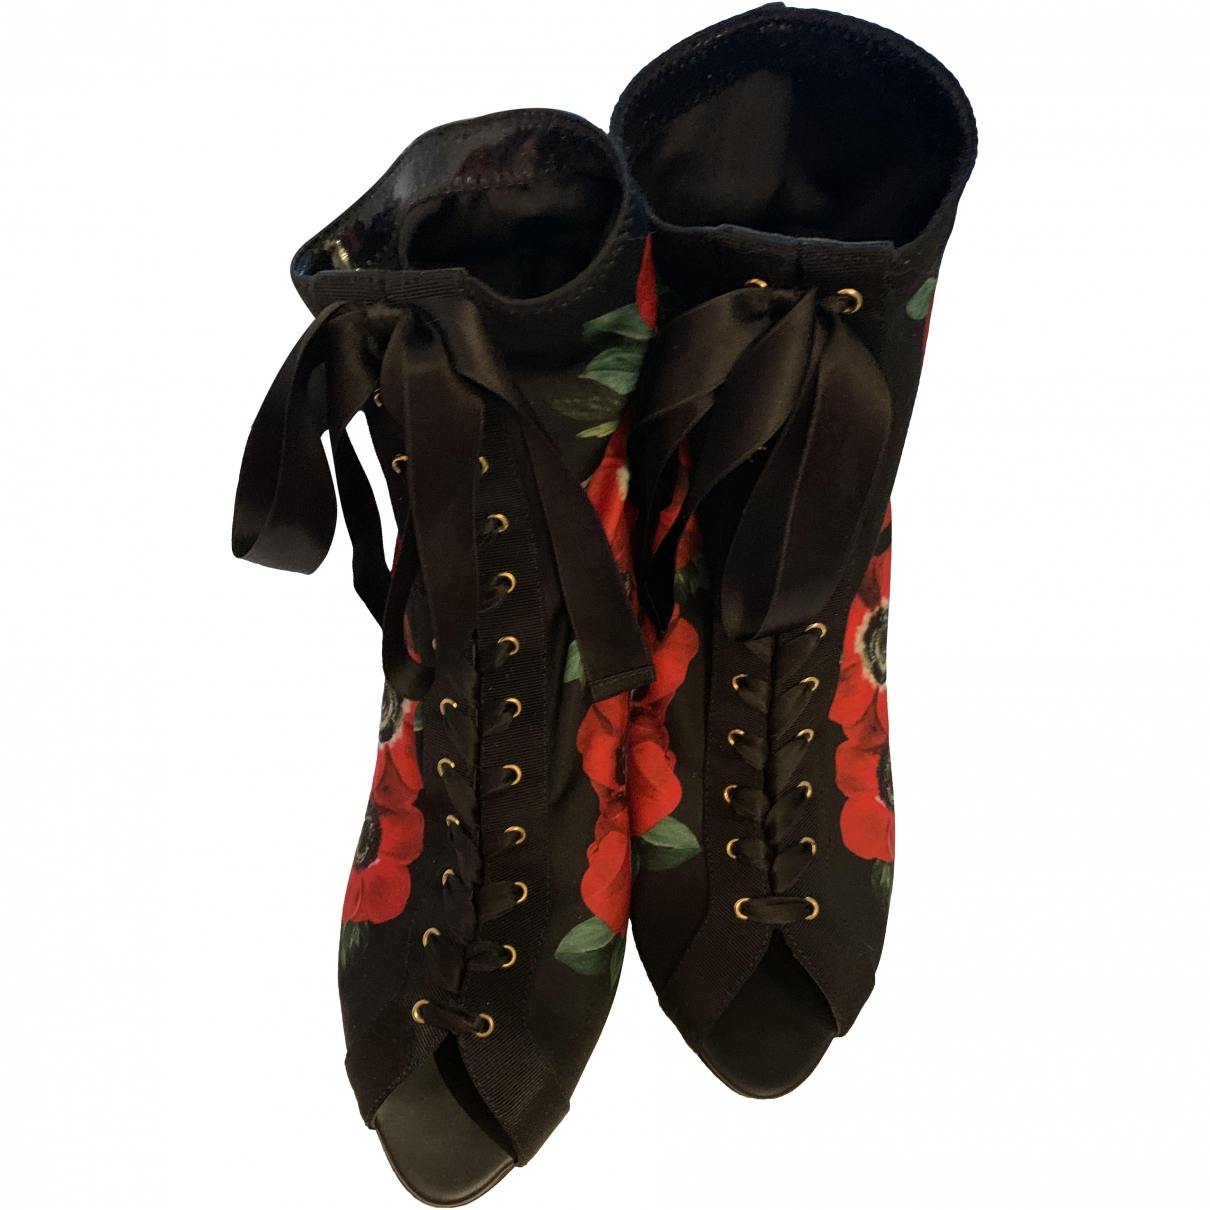 D&g \N Ankle boots for Women 41 EU